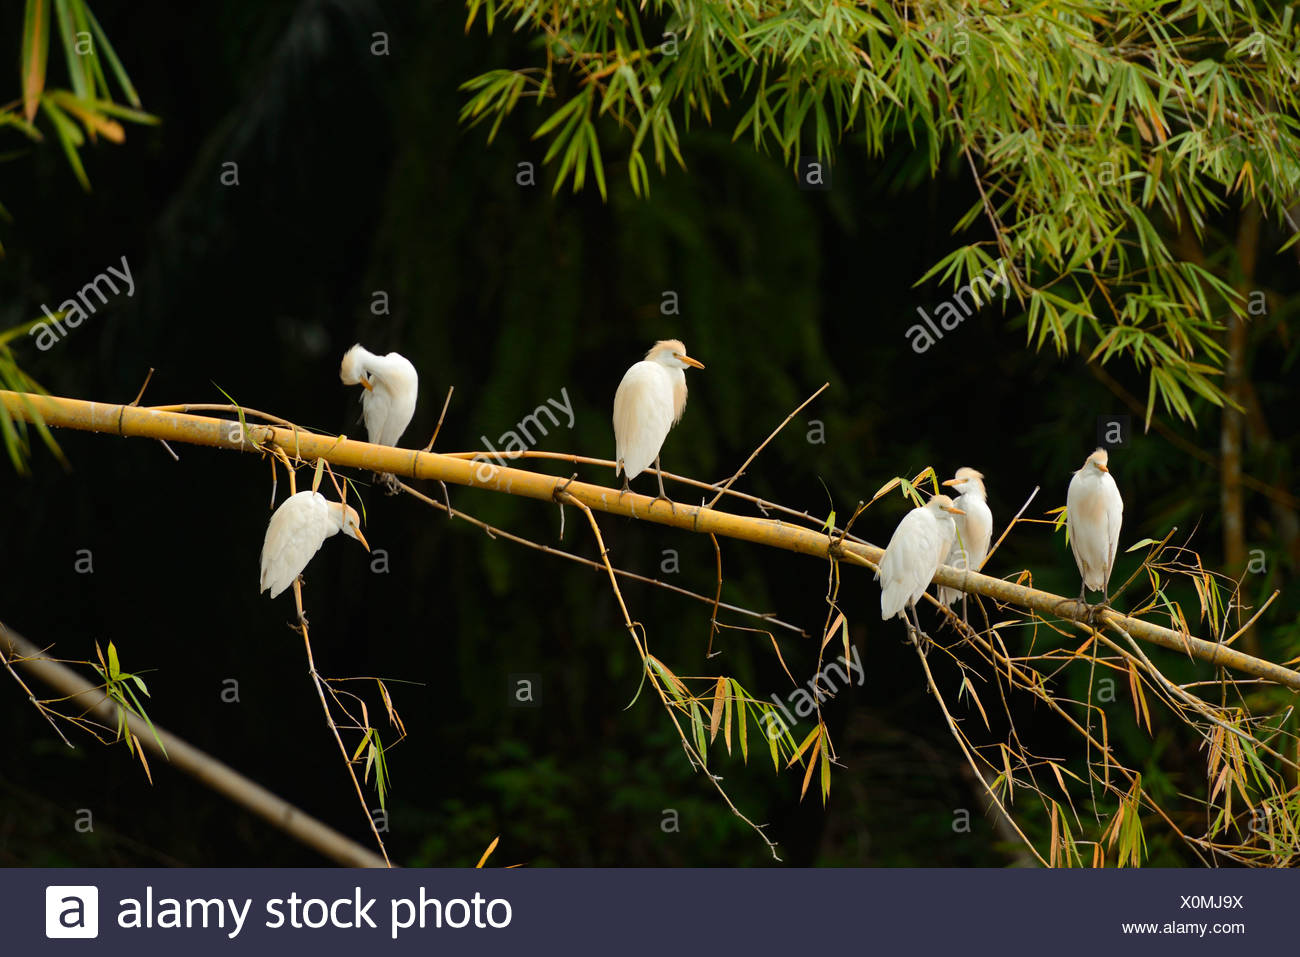 Central America, Costa Rica, Osa Peninsula, Corcovado, National Park, coastal forest, forest, bamboo, bird, egret, flock, Puntar - Stock Image